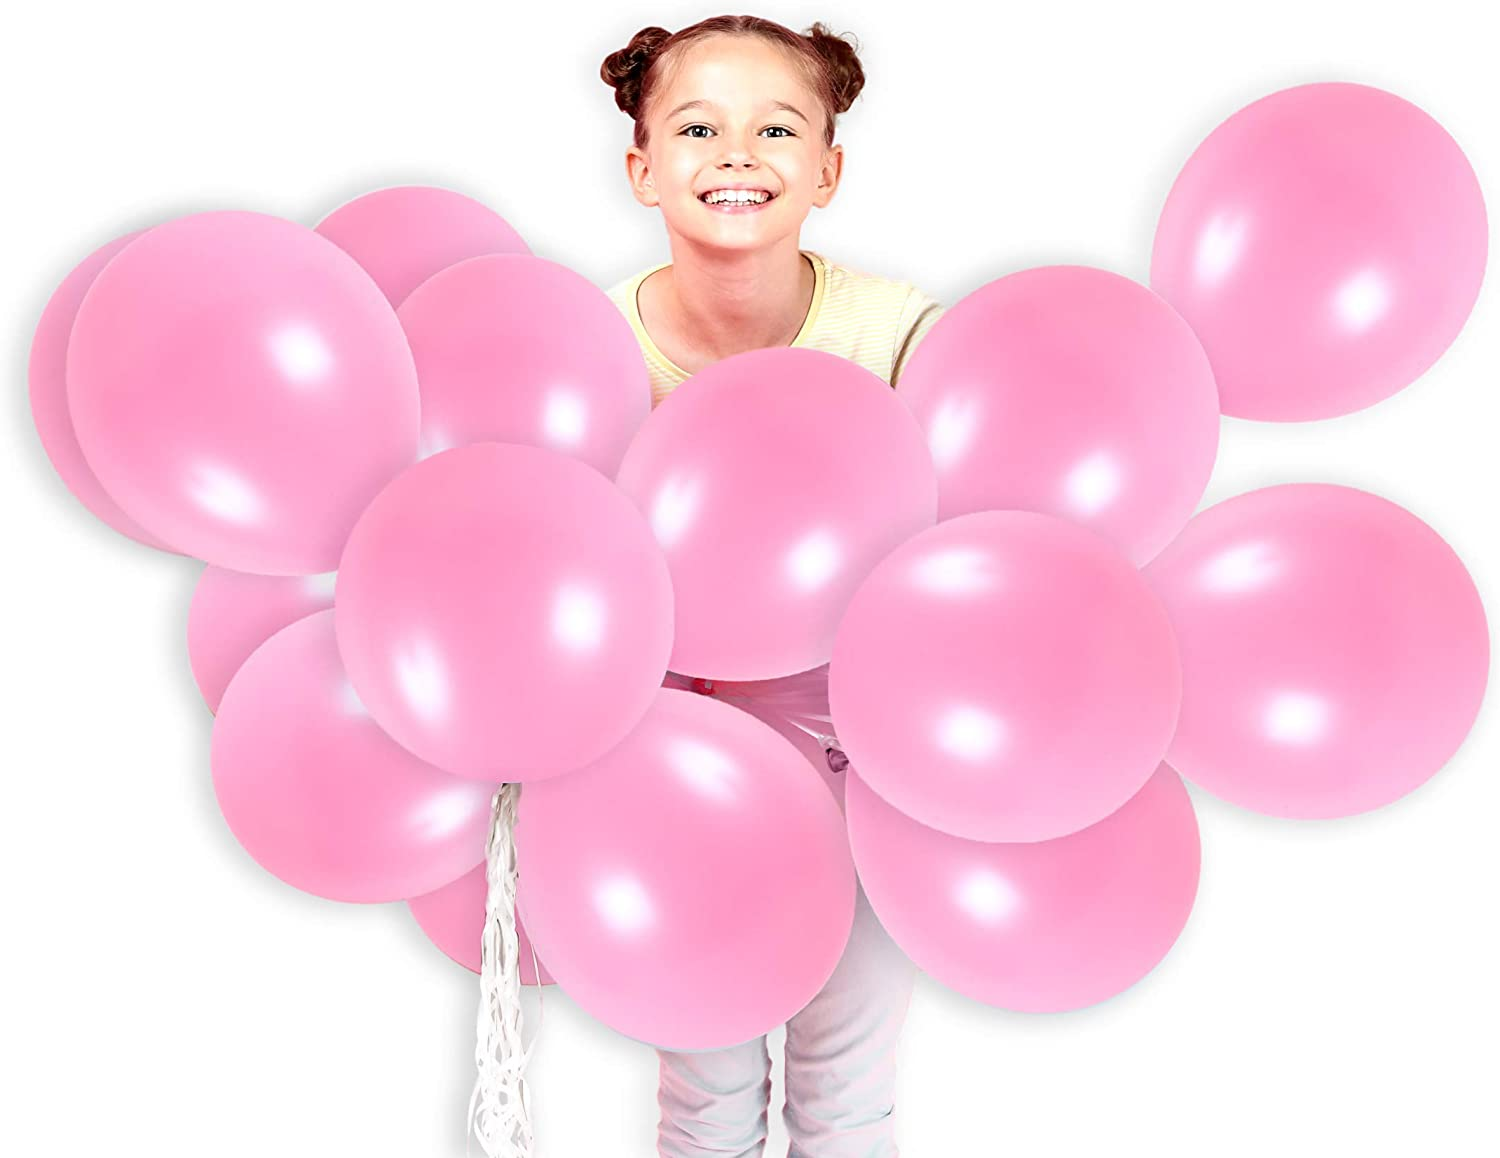 Photo Decoration Balloon. Birthday Beach Assorted Colored Balloons Bulk Made Strong Latex Helium Air Use Wedding Party 100 Pcs Party Balloons 10 Inches Rainbow Candy Color Balloons 100